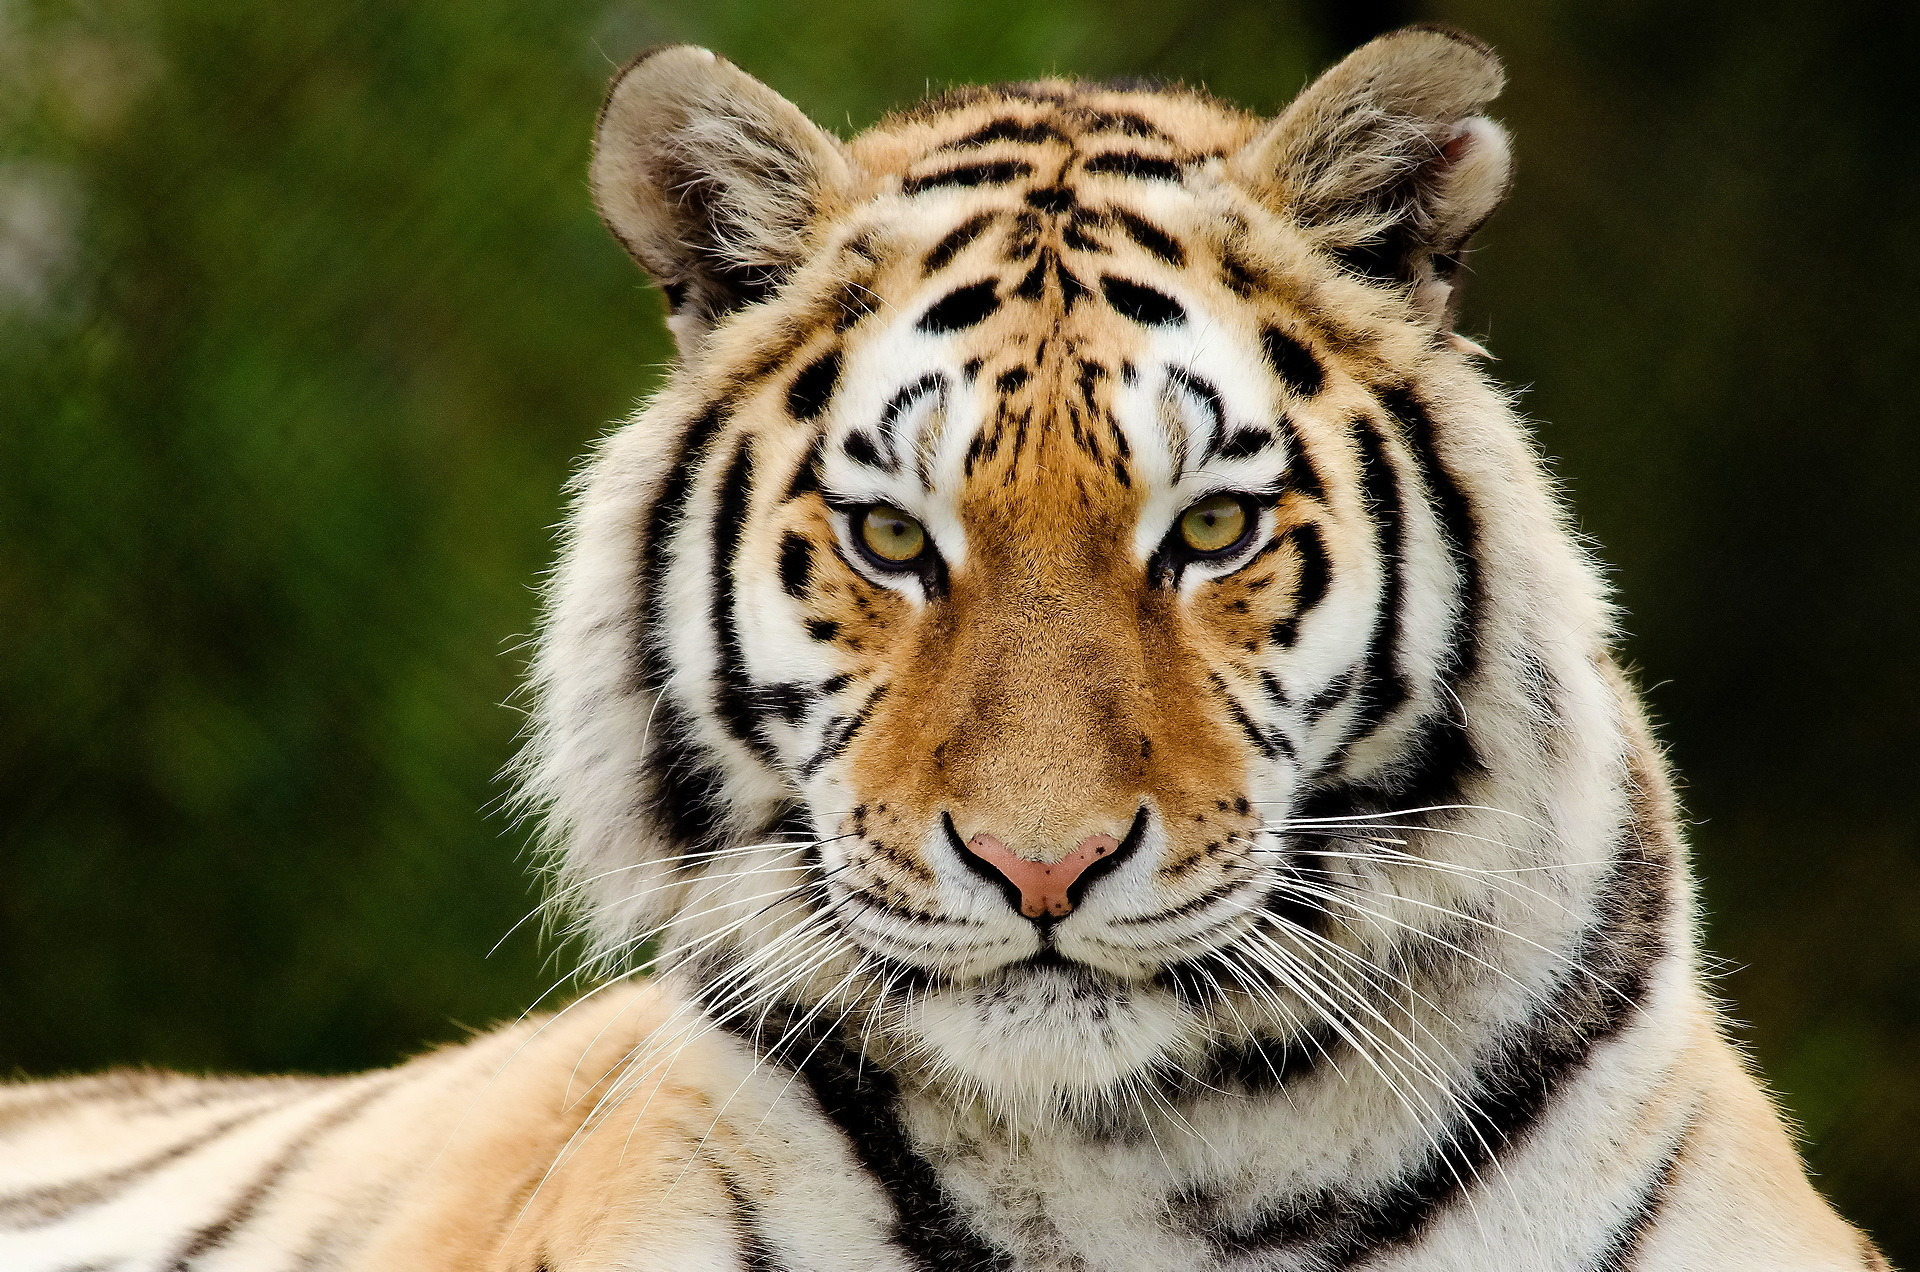 Tiger Facts, History, Useful Information and Amazing Pictures